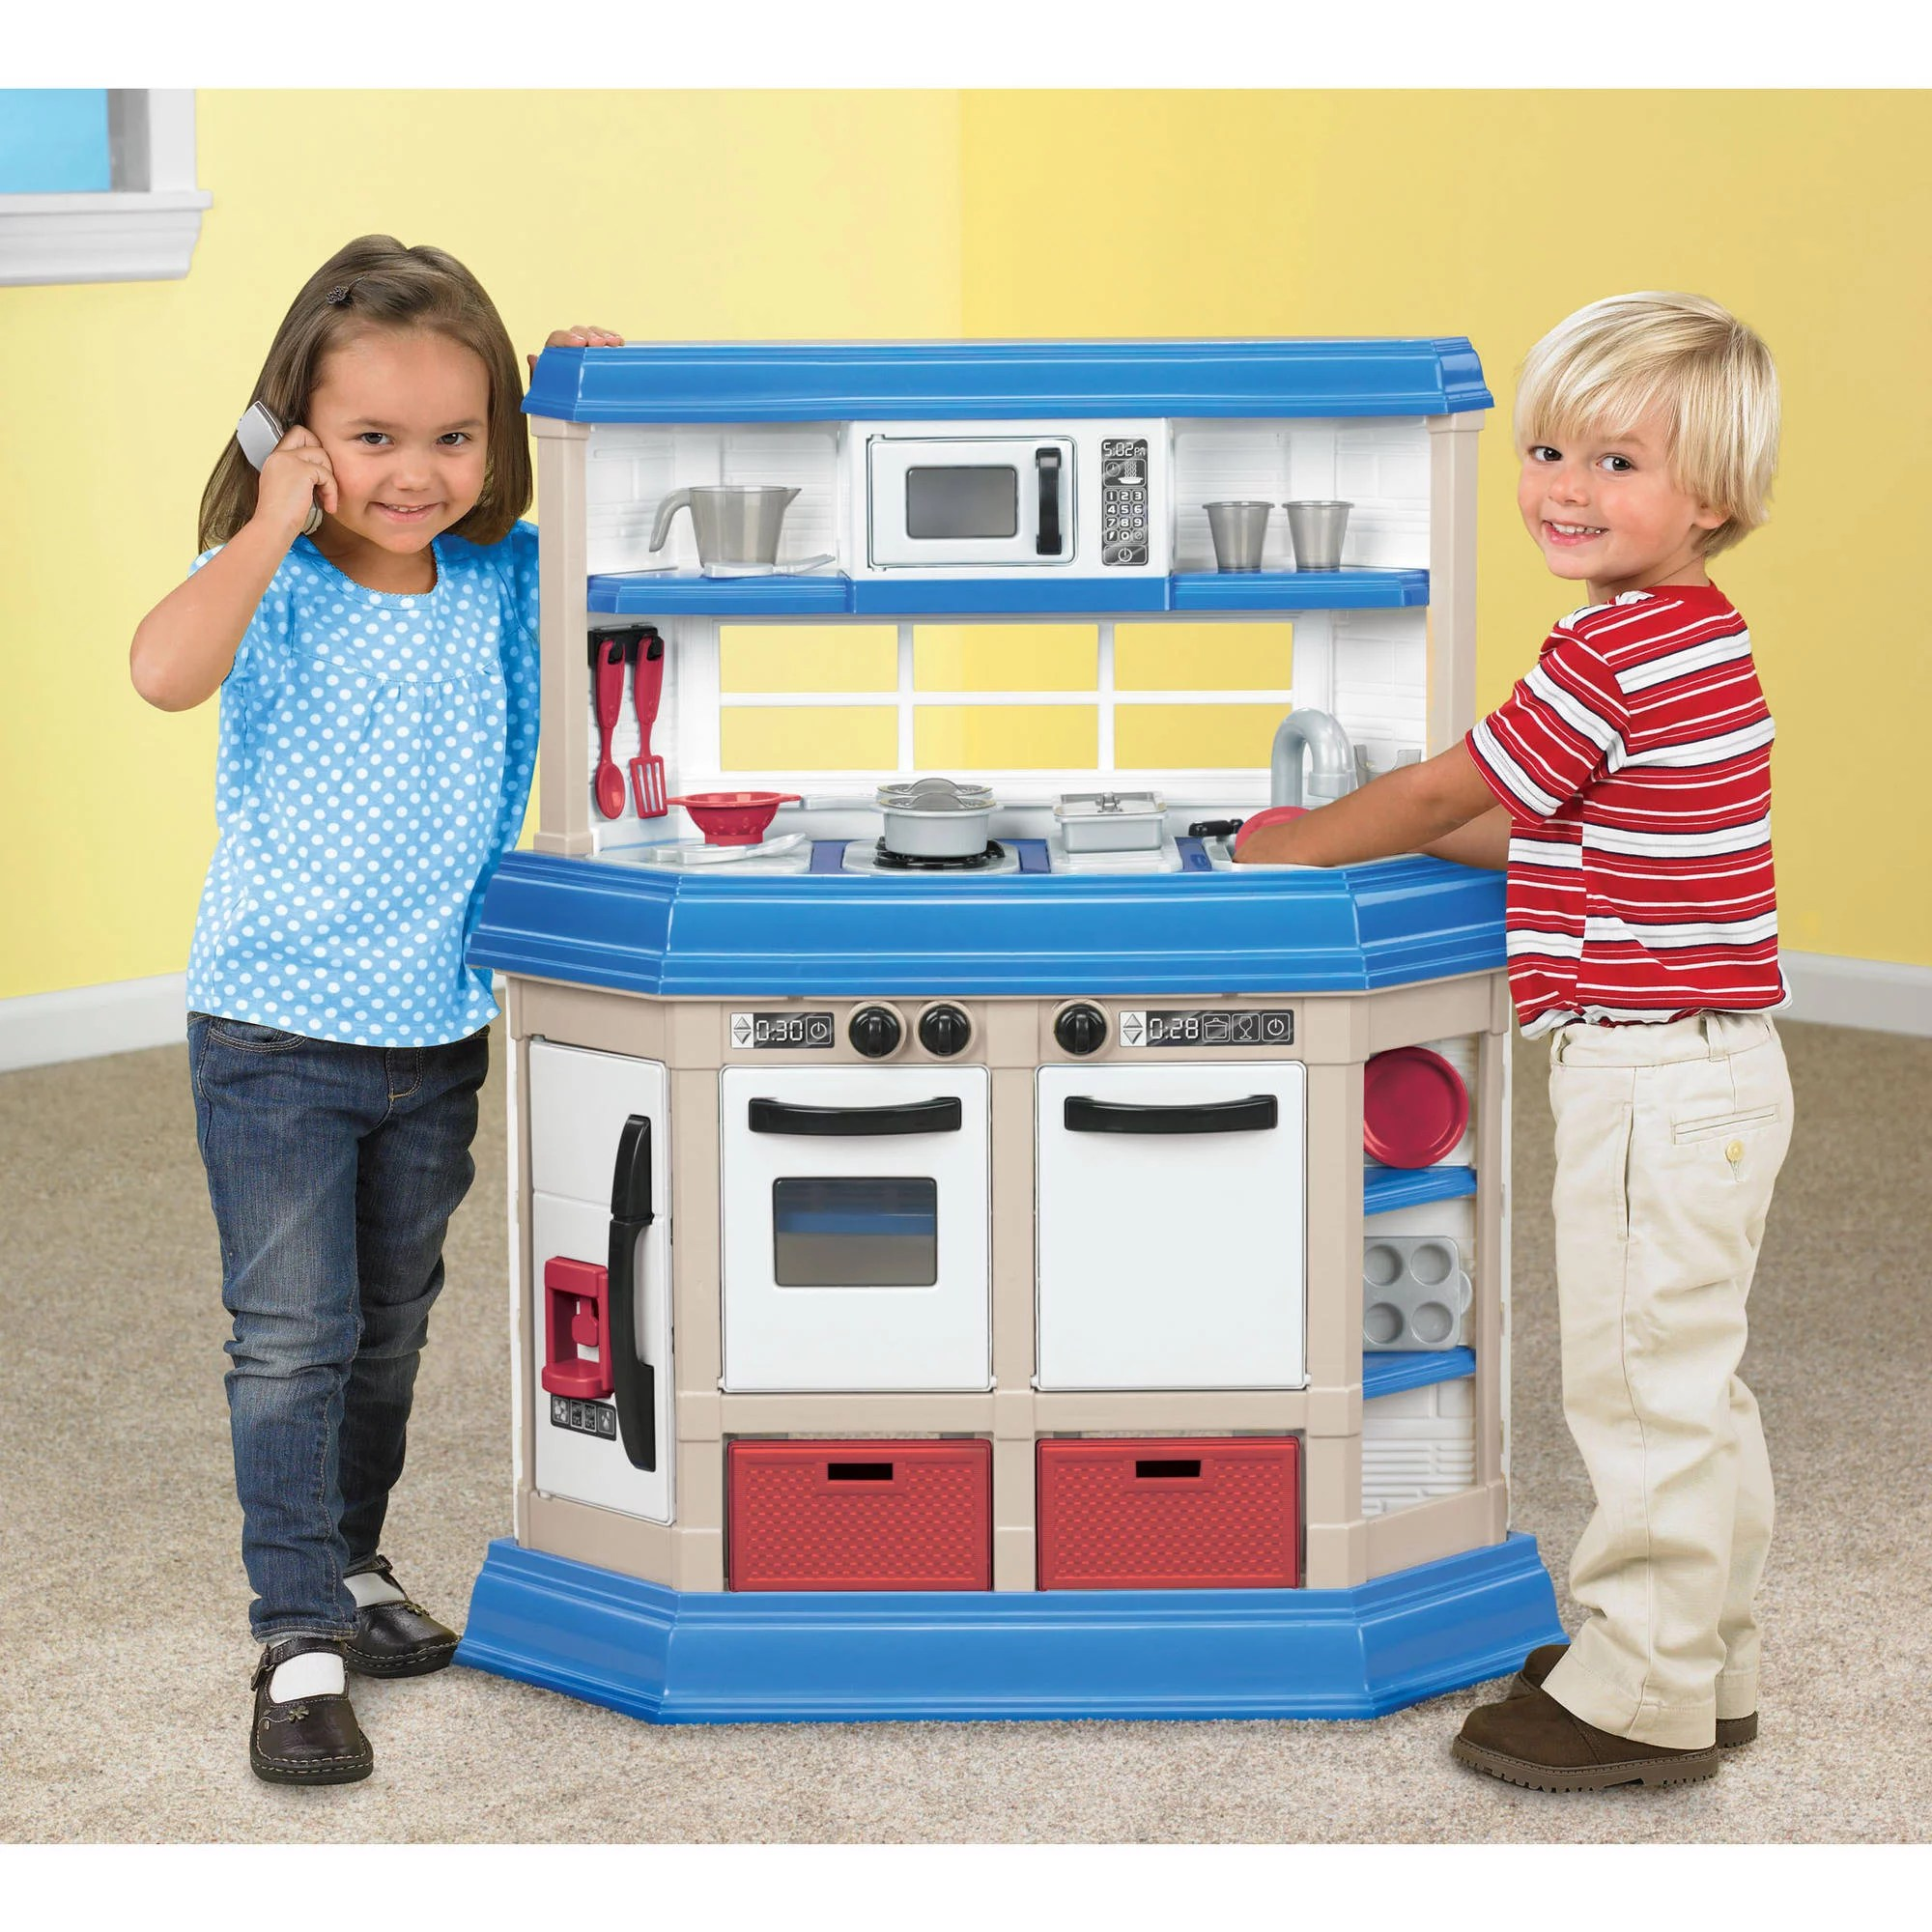 toy kitchen sets latest trends in flooring modern 16 battery operated playset perfect for use with 11 12 tall dolls walmart com